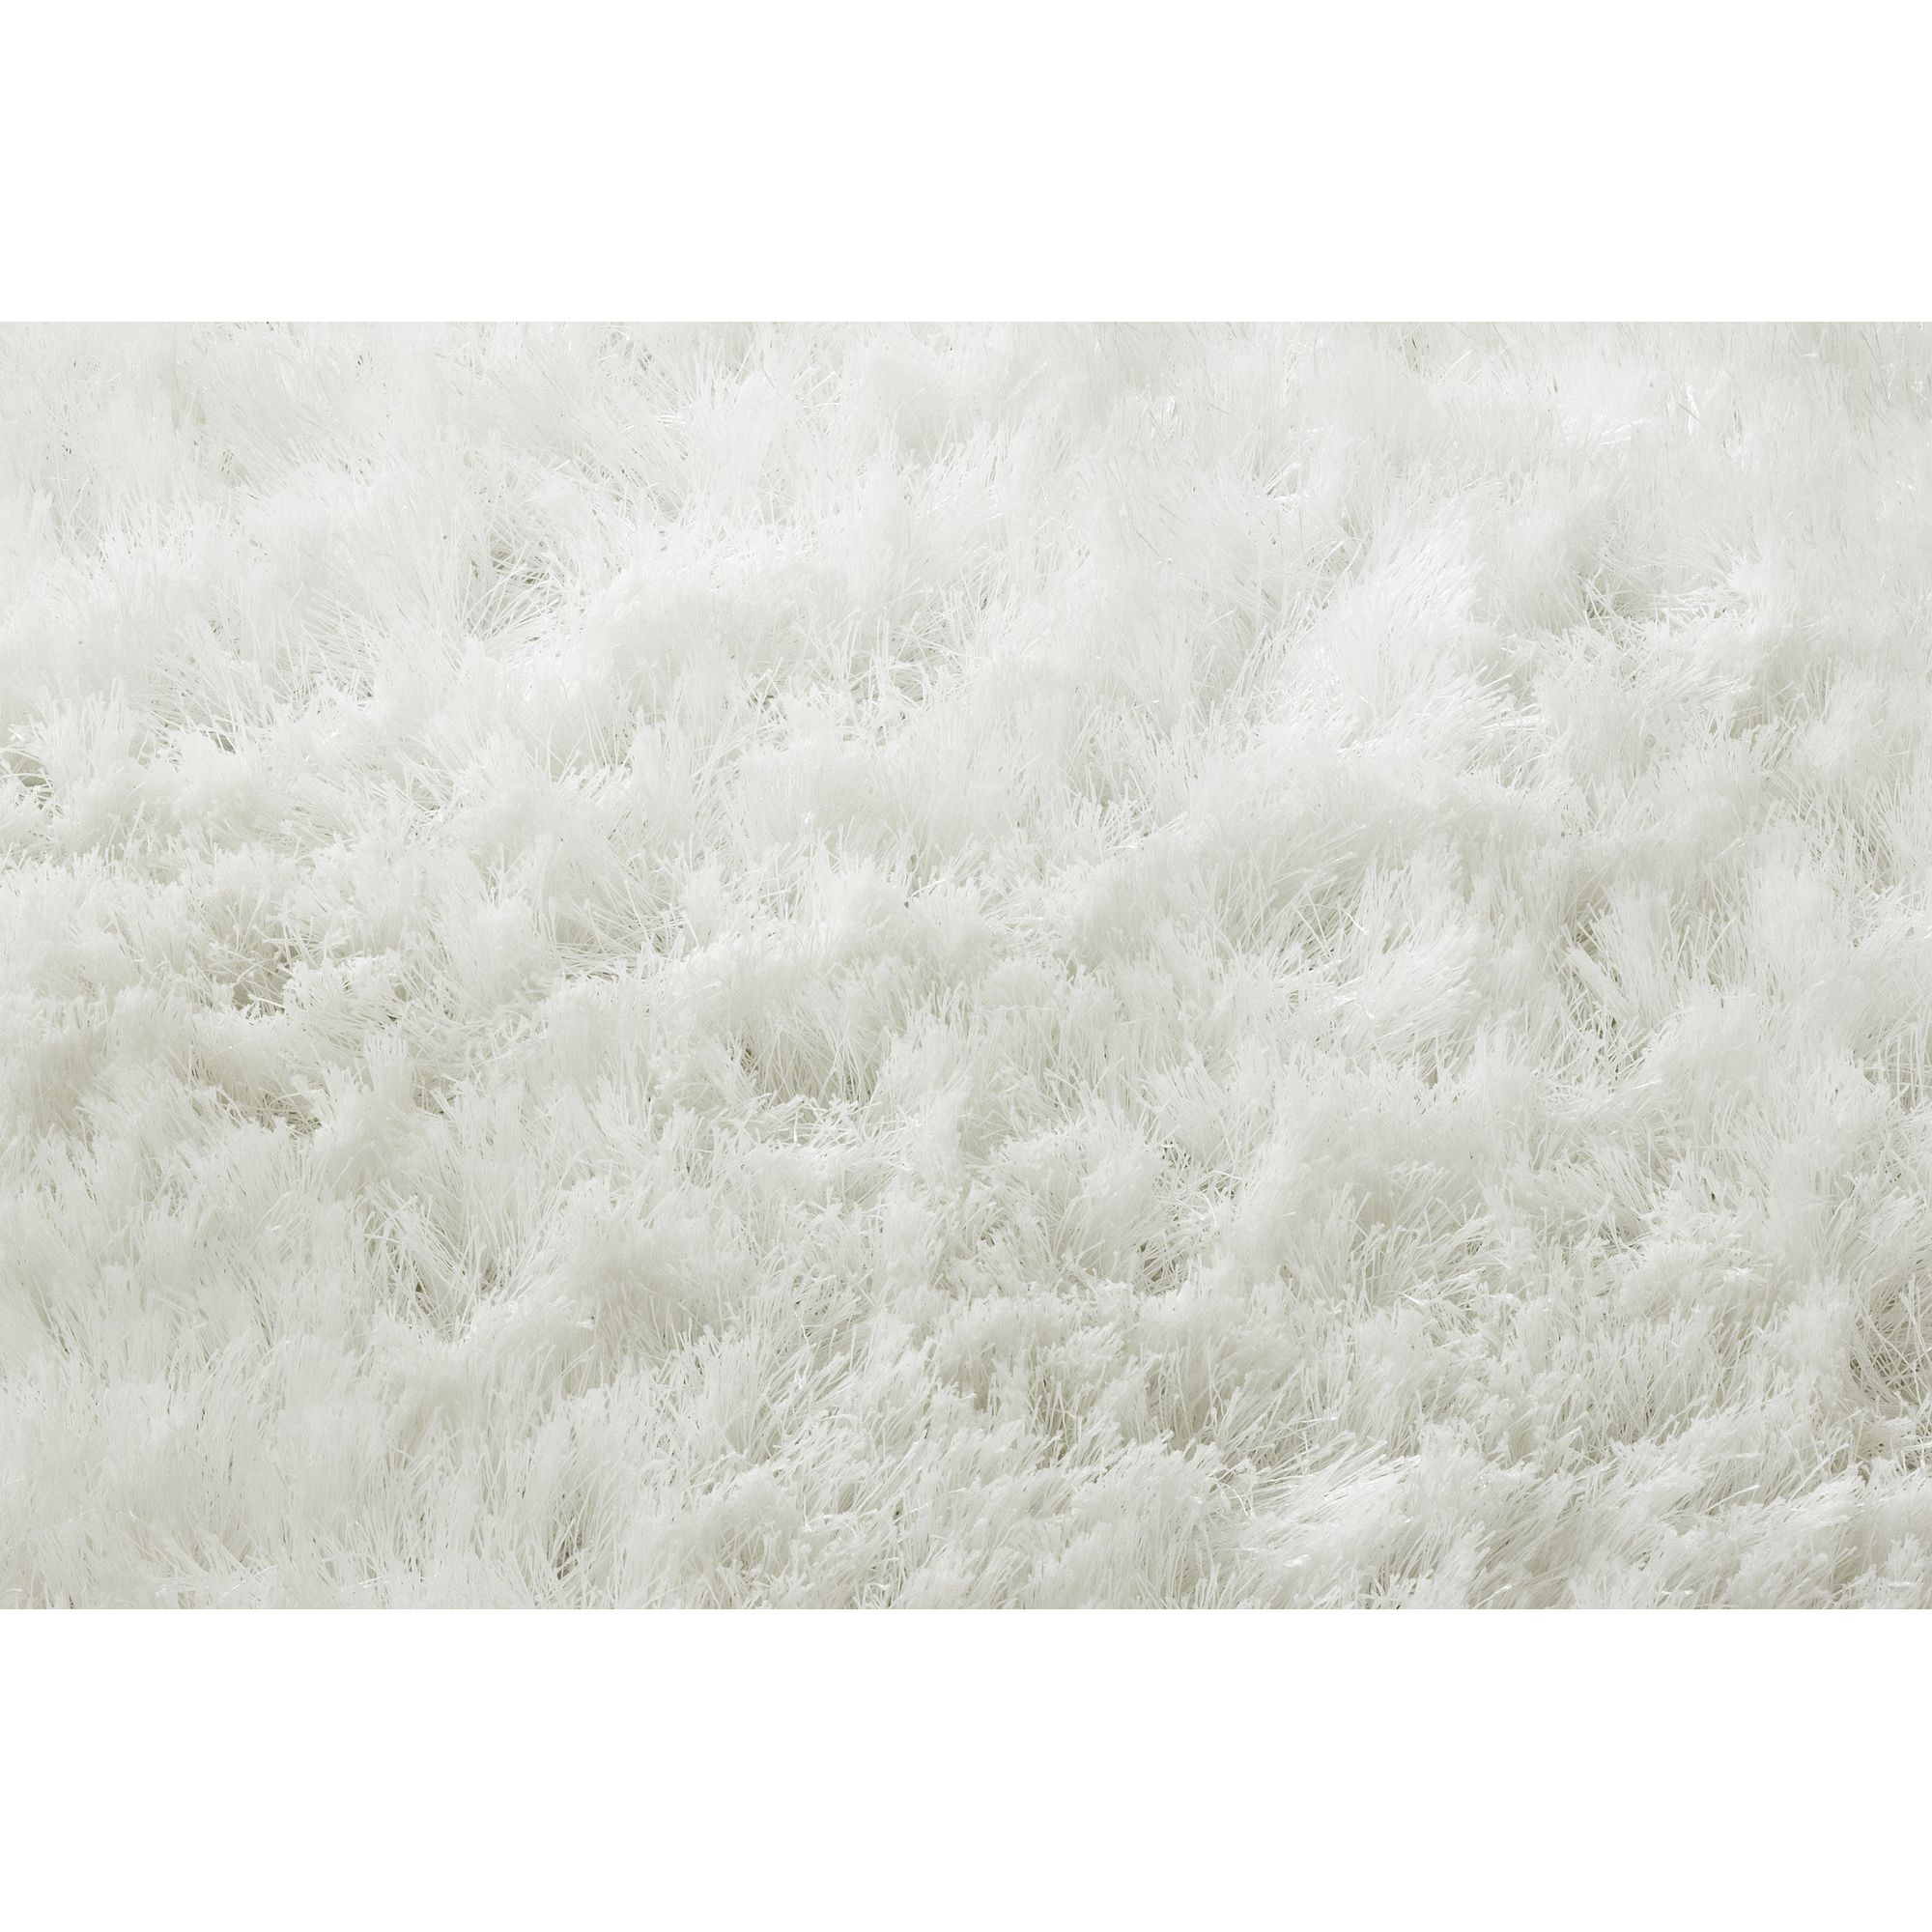 Linie Design Mantova White Shag Rug - 300cm x 200cm at Tesco Direct